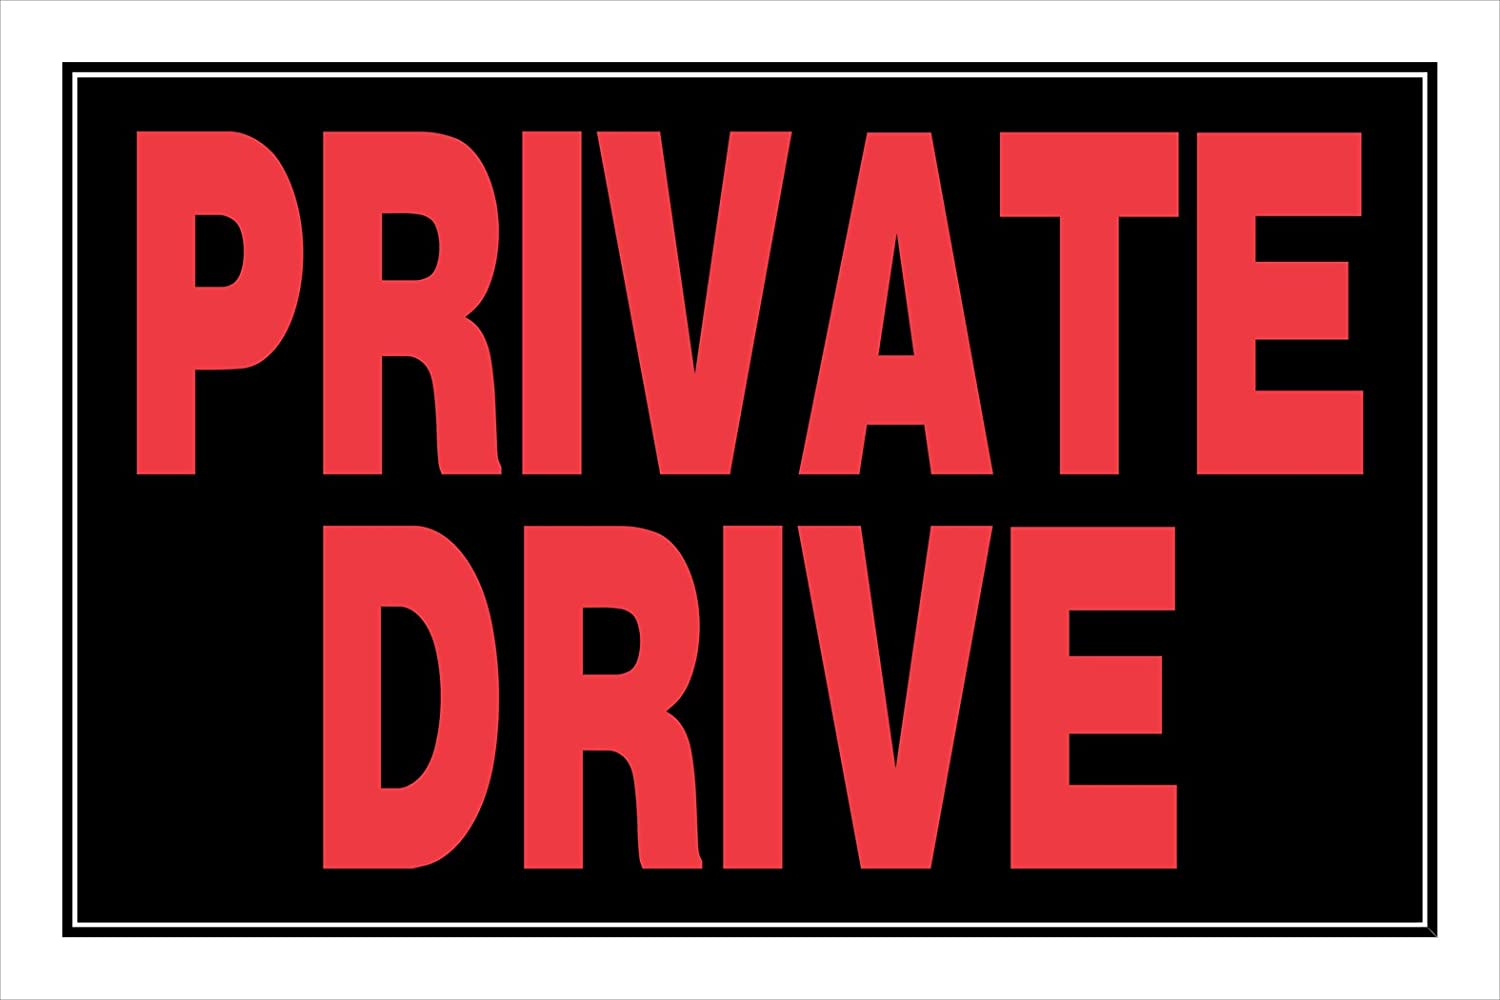 Hillman 841882 Private Drive Sign, Black and Red Plastic, 8x12 Inches 1-Sign